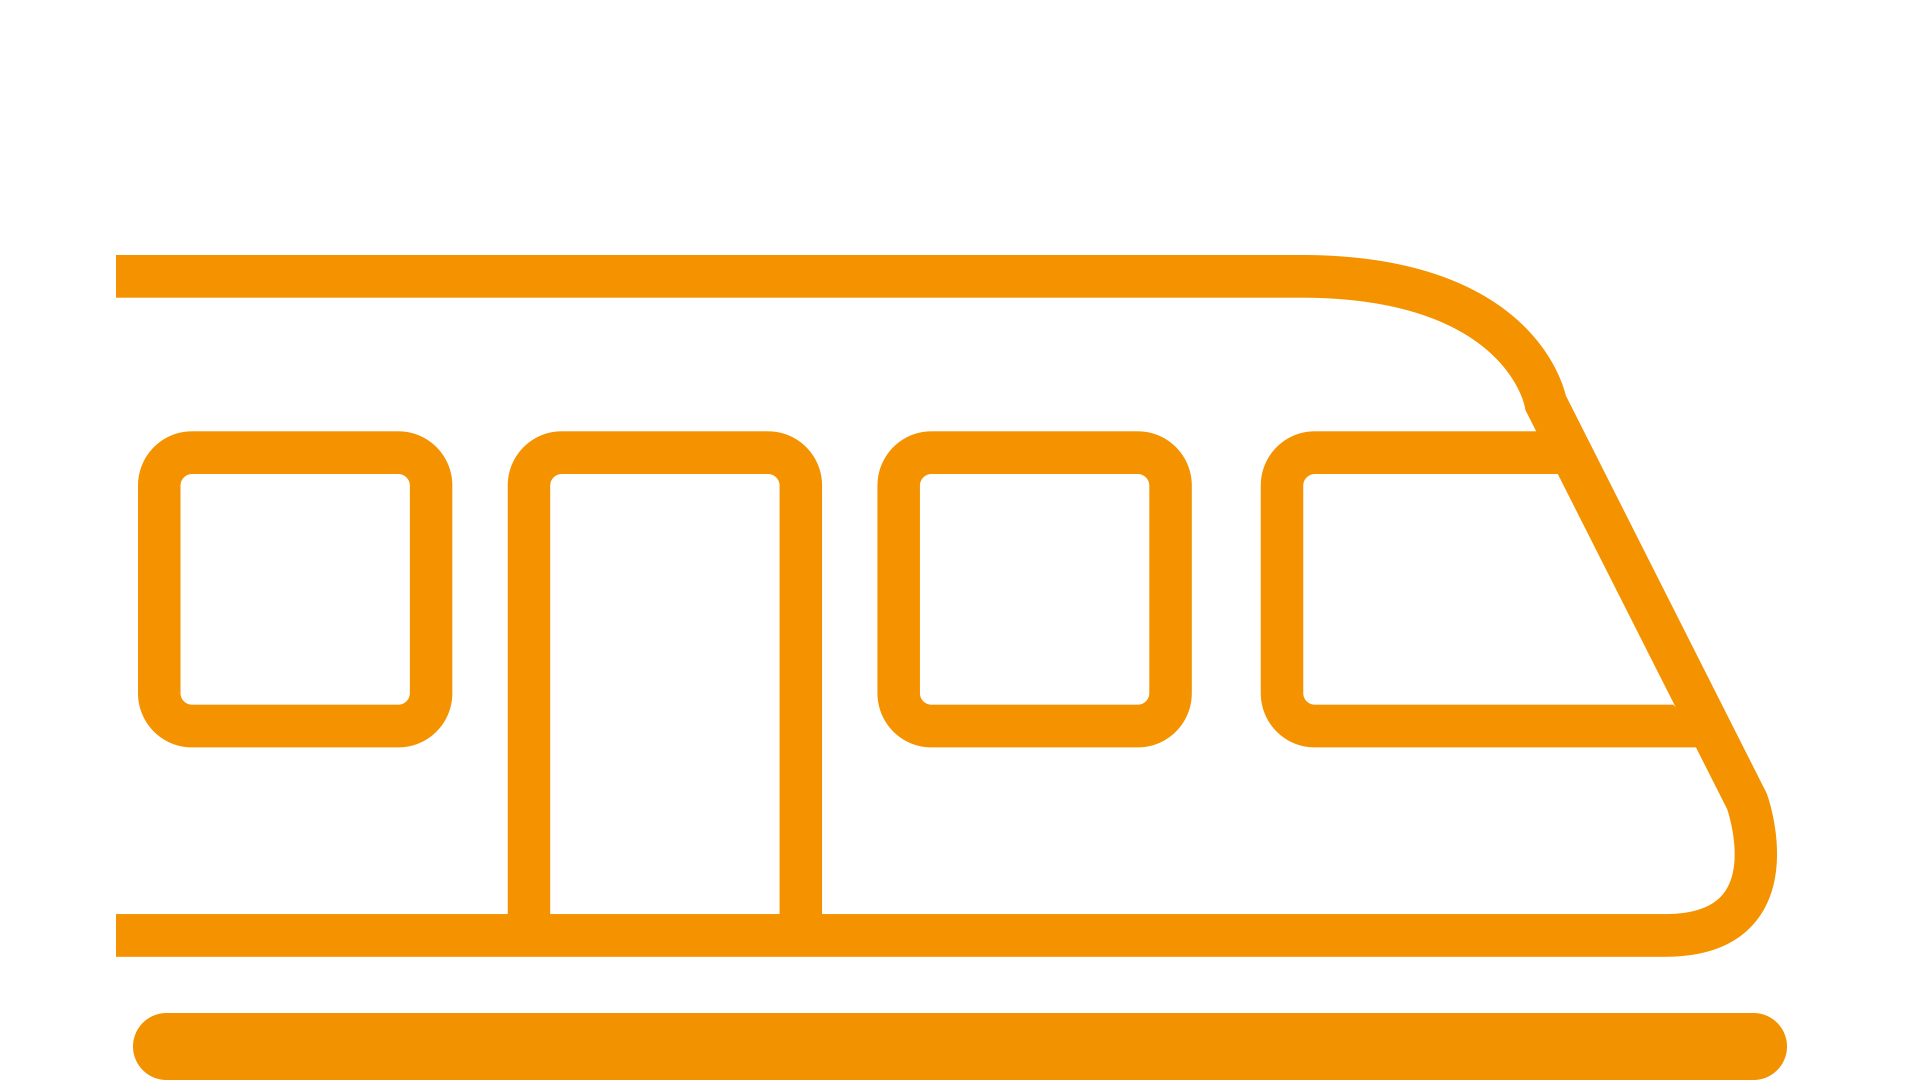 pictogram of a train